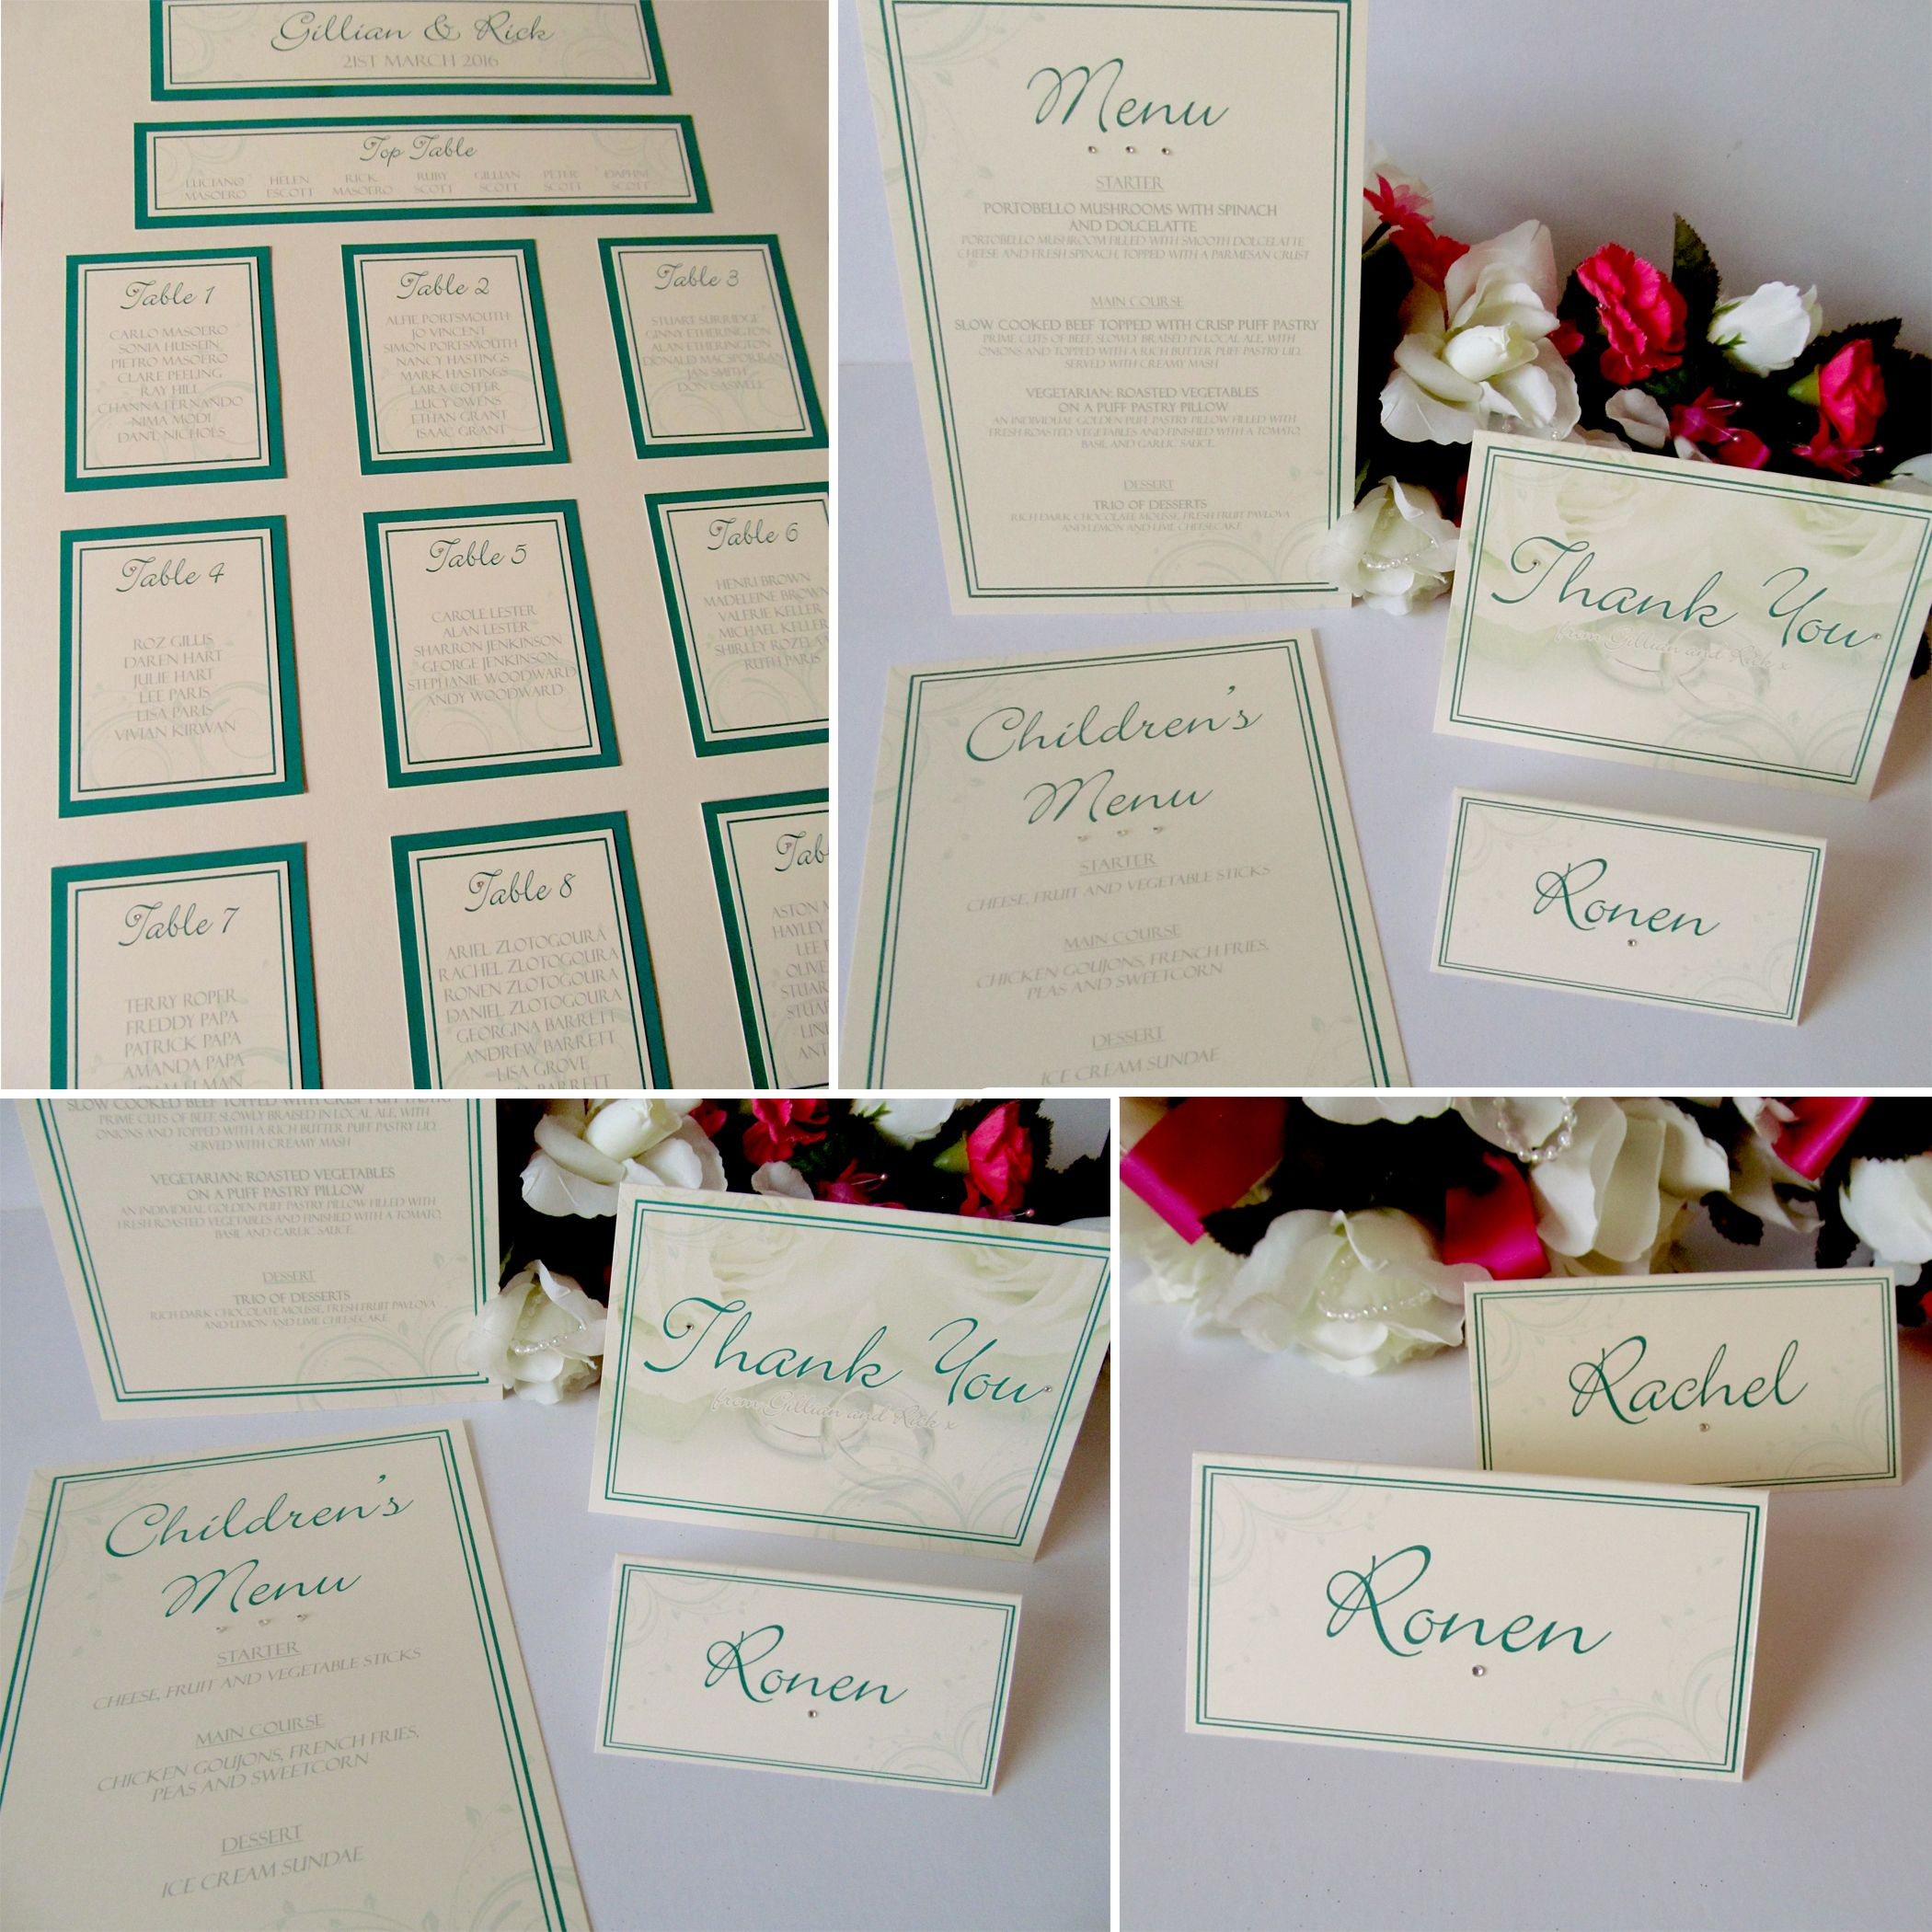 Wedding Invitations And Stationery From Yellow Blossom Designs Ltd A2 Table Plan Hunter Green